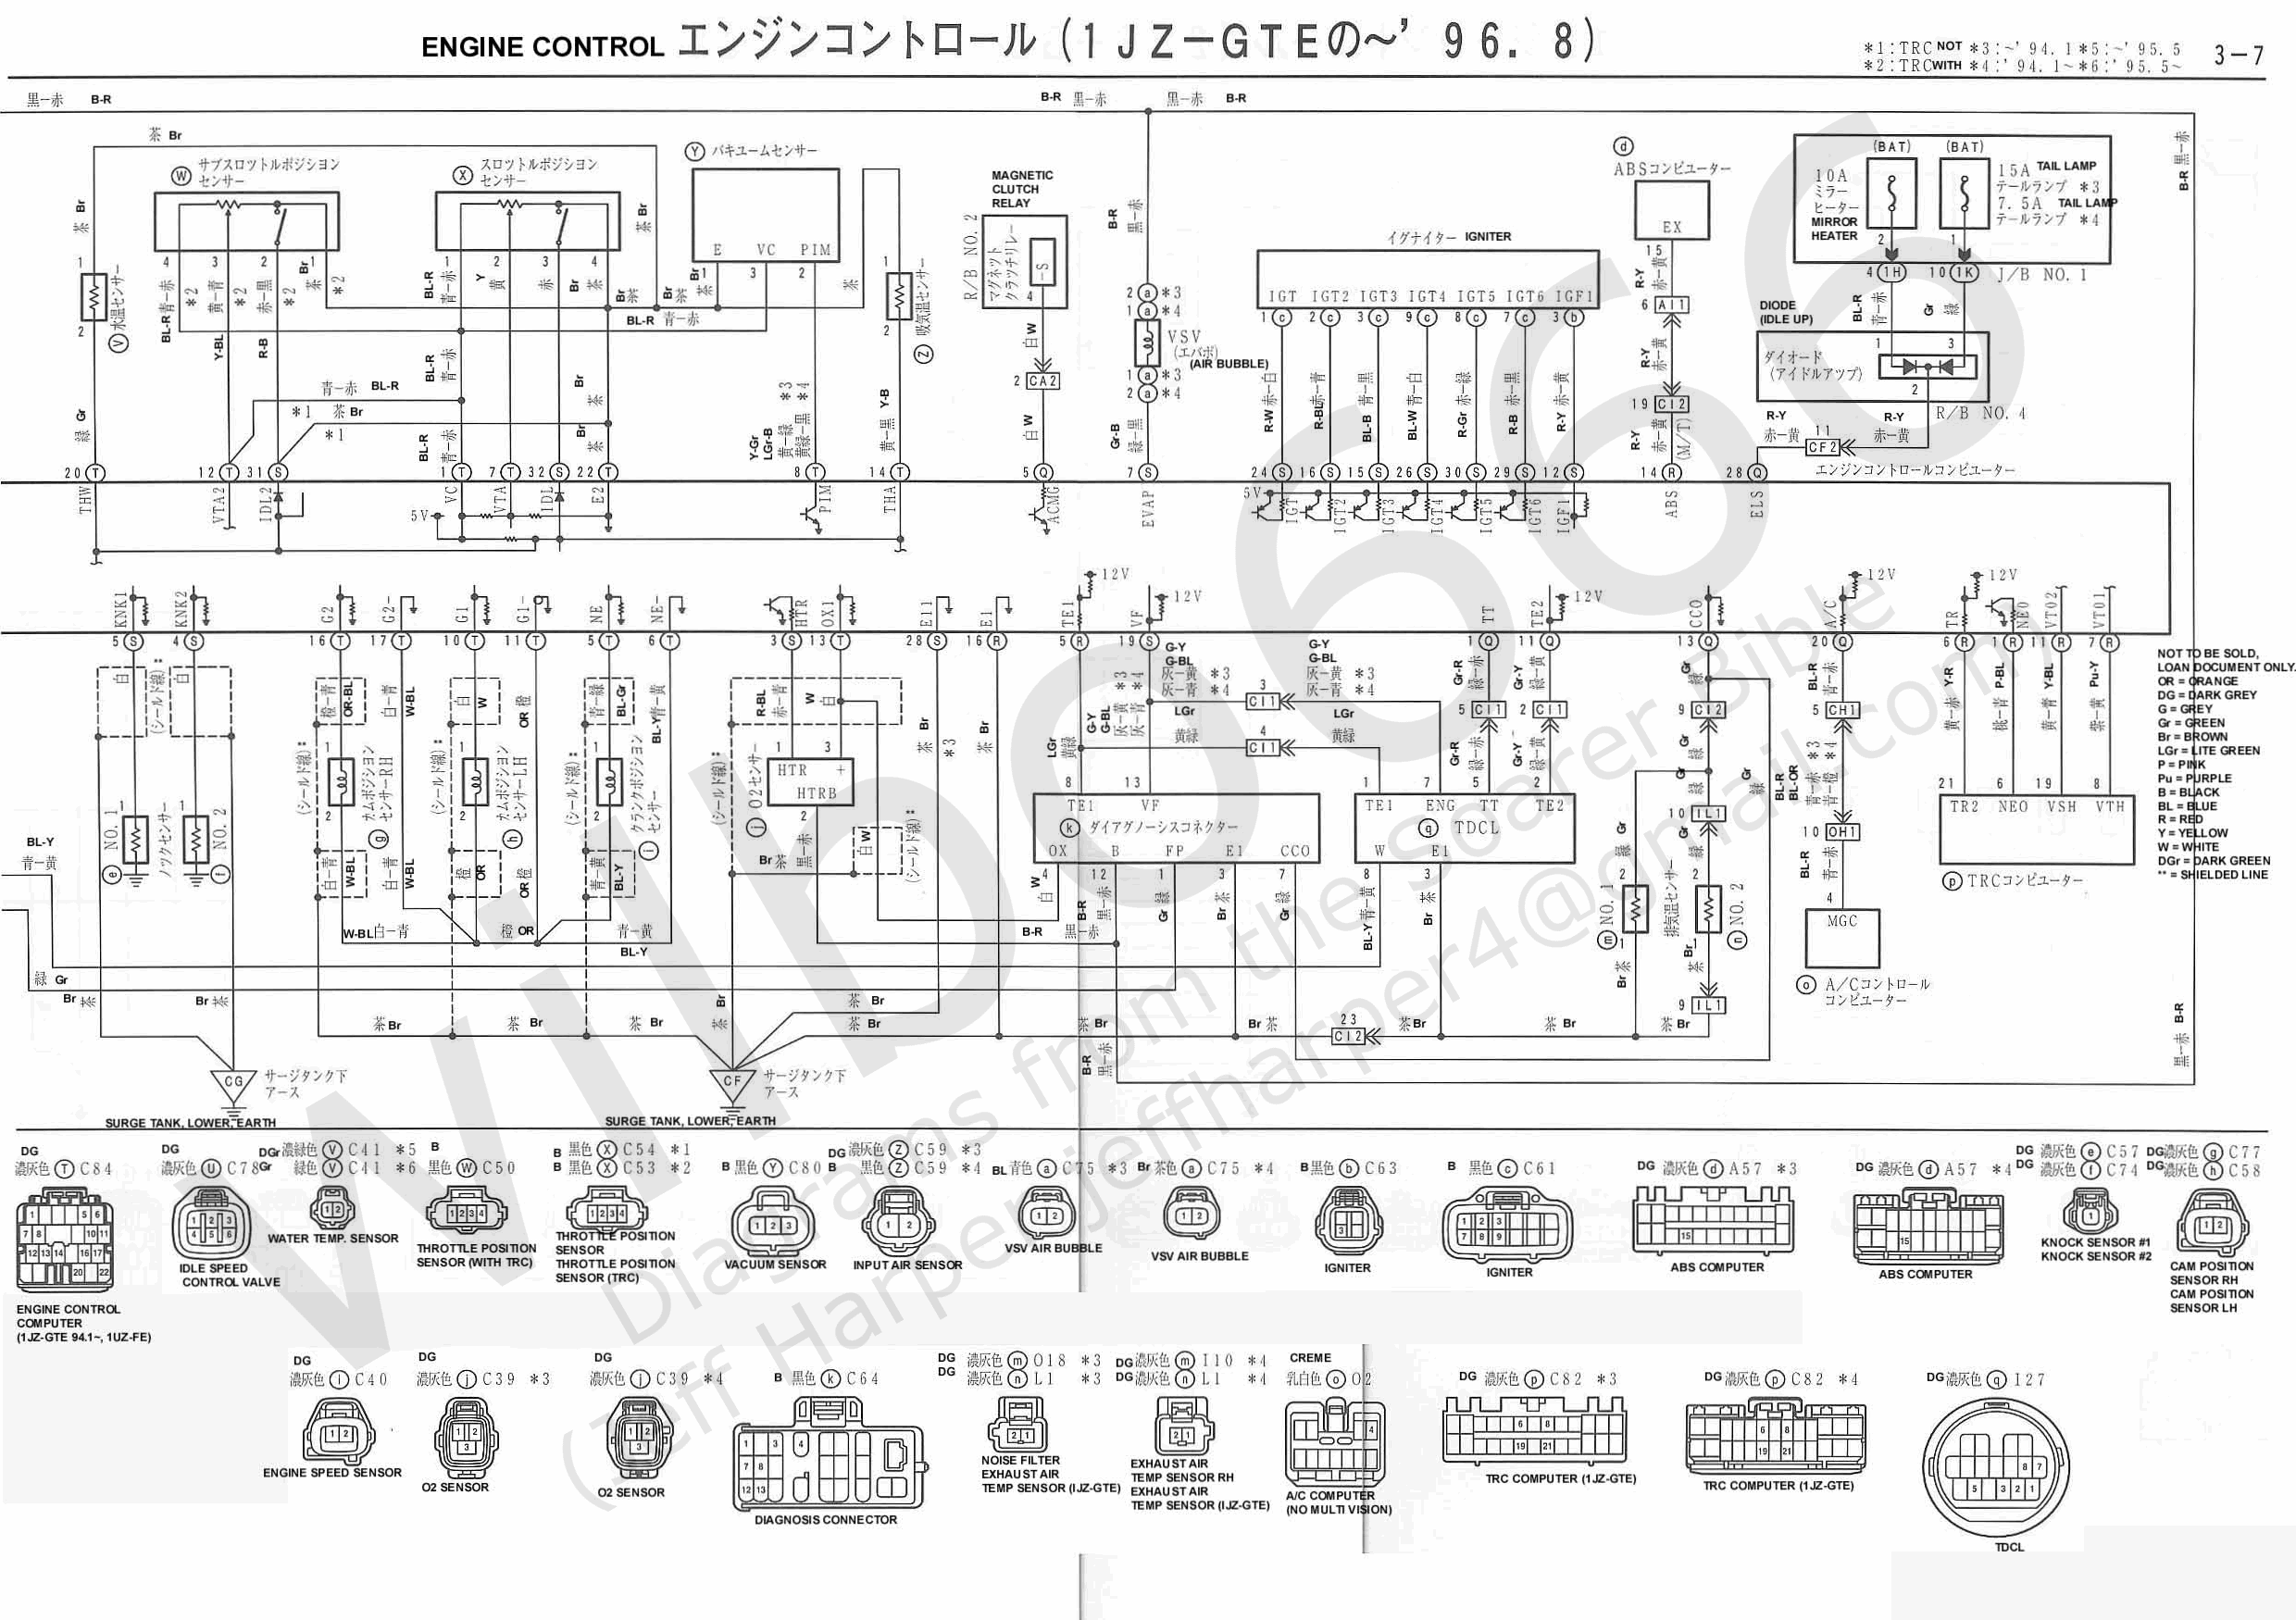 1jz Engine Wiring Diagram 25 Images Porsche 914 Type Iv Xzz3x Electrical 6737105 3 7 Toyota Soarer Diagrams Instruction